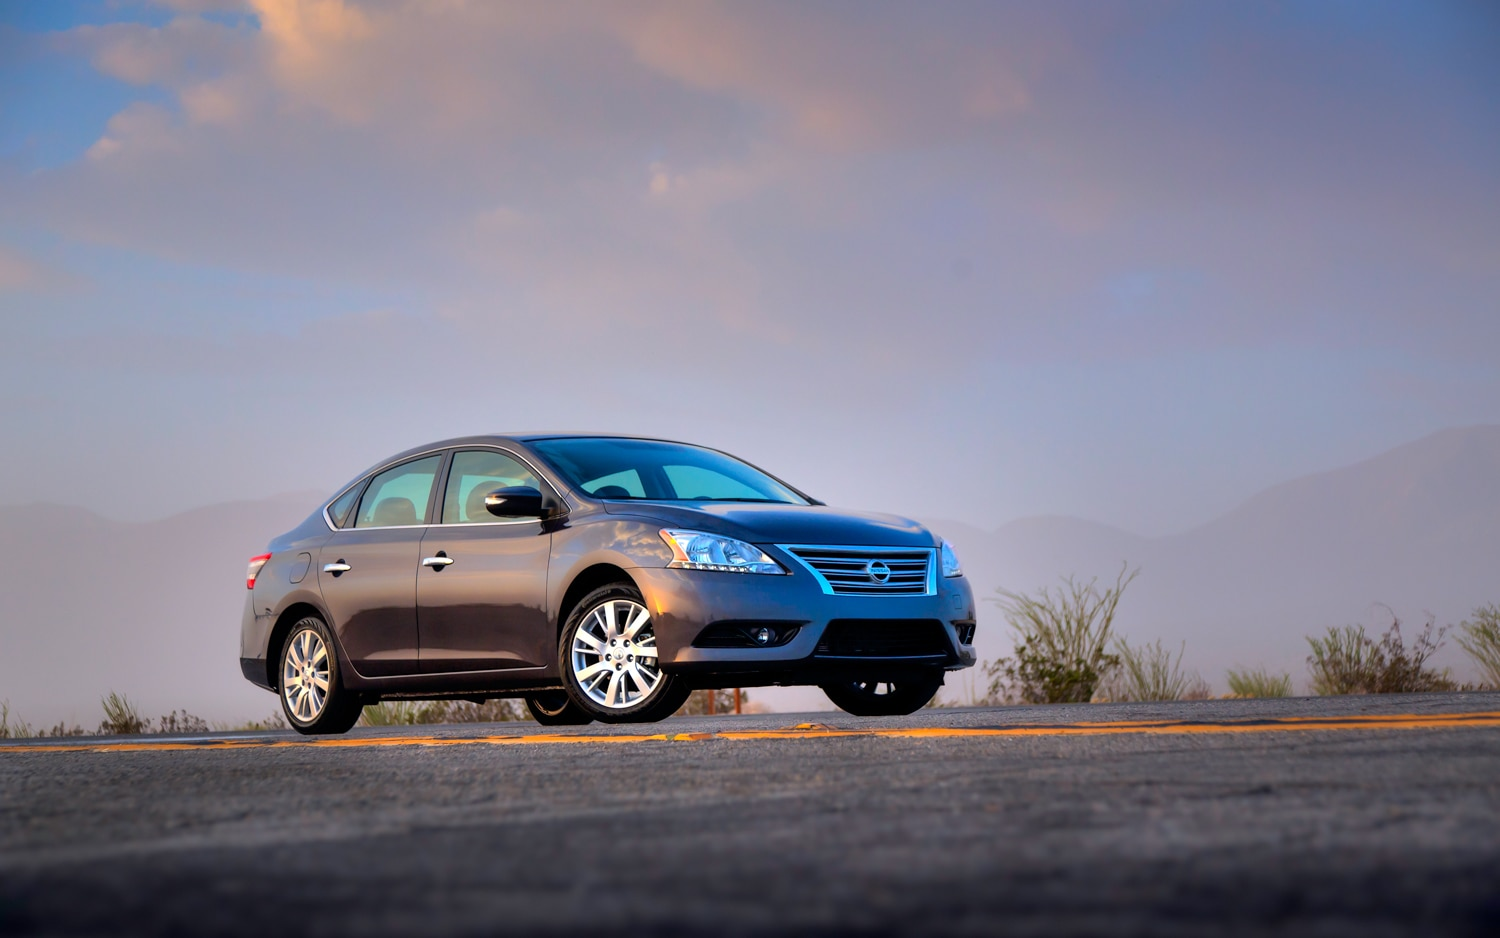 2013 Nissan Sentra Front Right Side View1